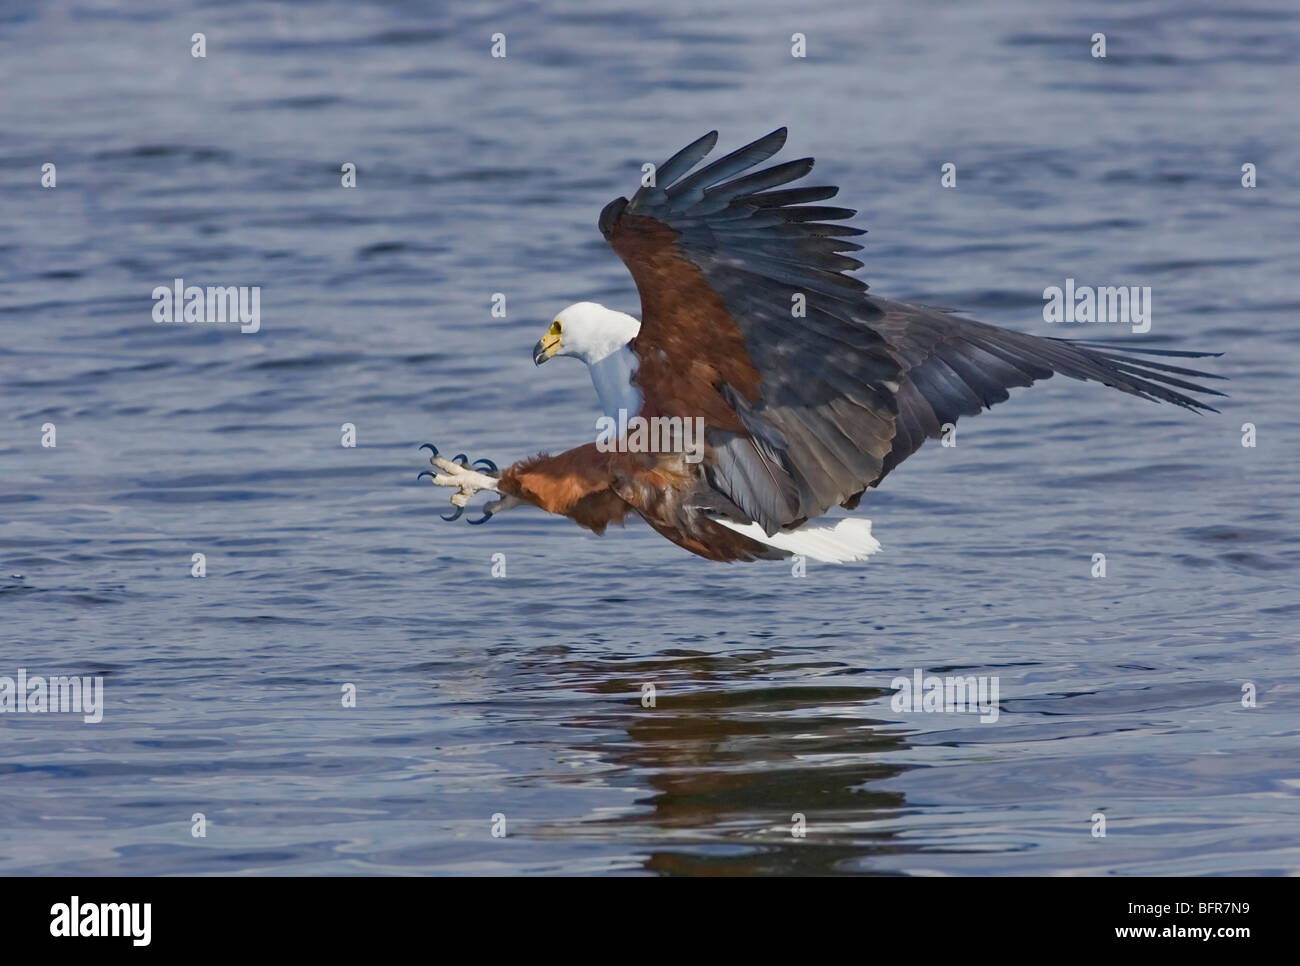 African fish eagle with talons outstretched in fishing action - Stock Image